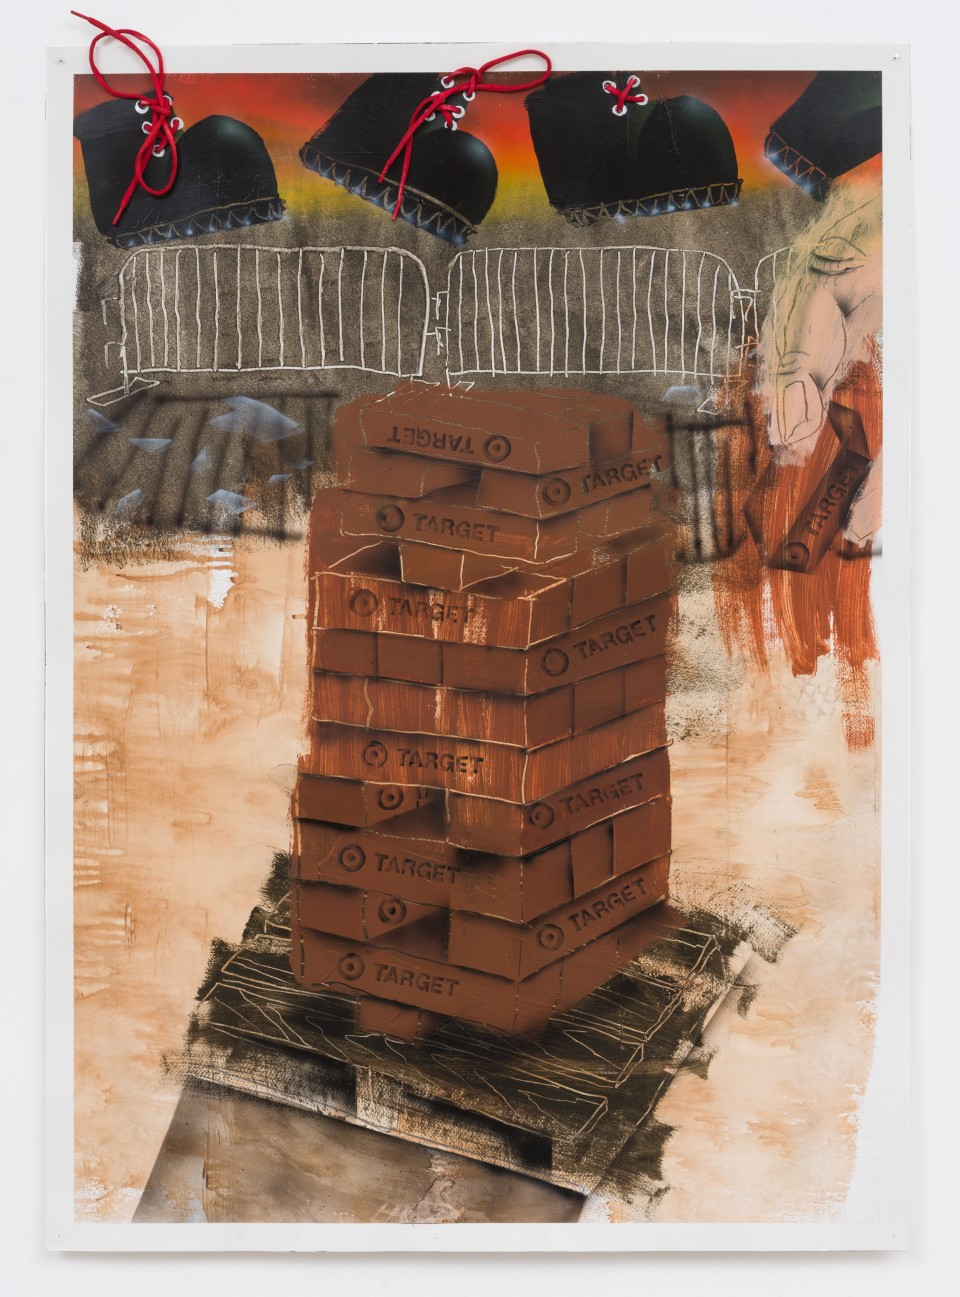 """Image: Pat Phillips  Untitled """"What goes up must come down"""" / Getcha Target bricks!"""", 2020  signed and dated verso  acrylic, shoe string, airbrush, aerosol paint on paper  paper size: 42 x 29 1/2 inches (106.7 x 74.9 cm) framed size: 43 7/8 x 32 1/8 inches (111.44 x 81.59 cm)"""